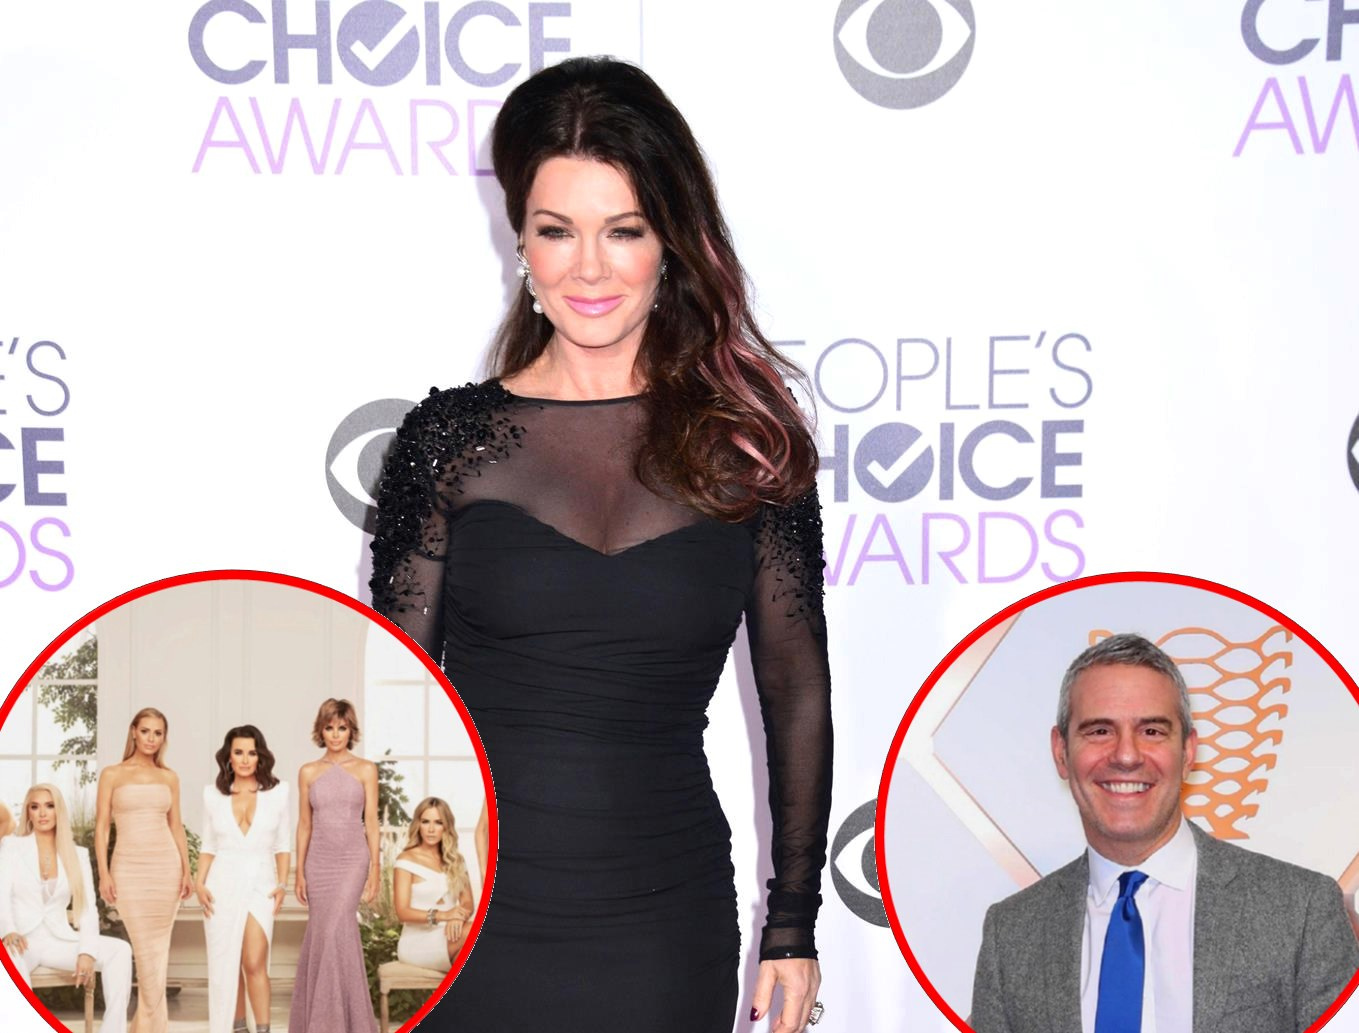 Lisa Vanderpump Wonders What RHOBH Costars' Storylines Will Be Without Her, Reveals Plans to Unfollow Them as She Defends Andy Cohen!